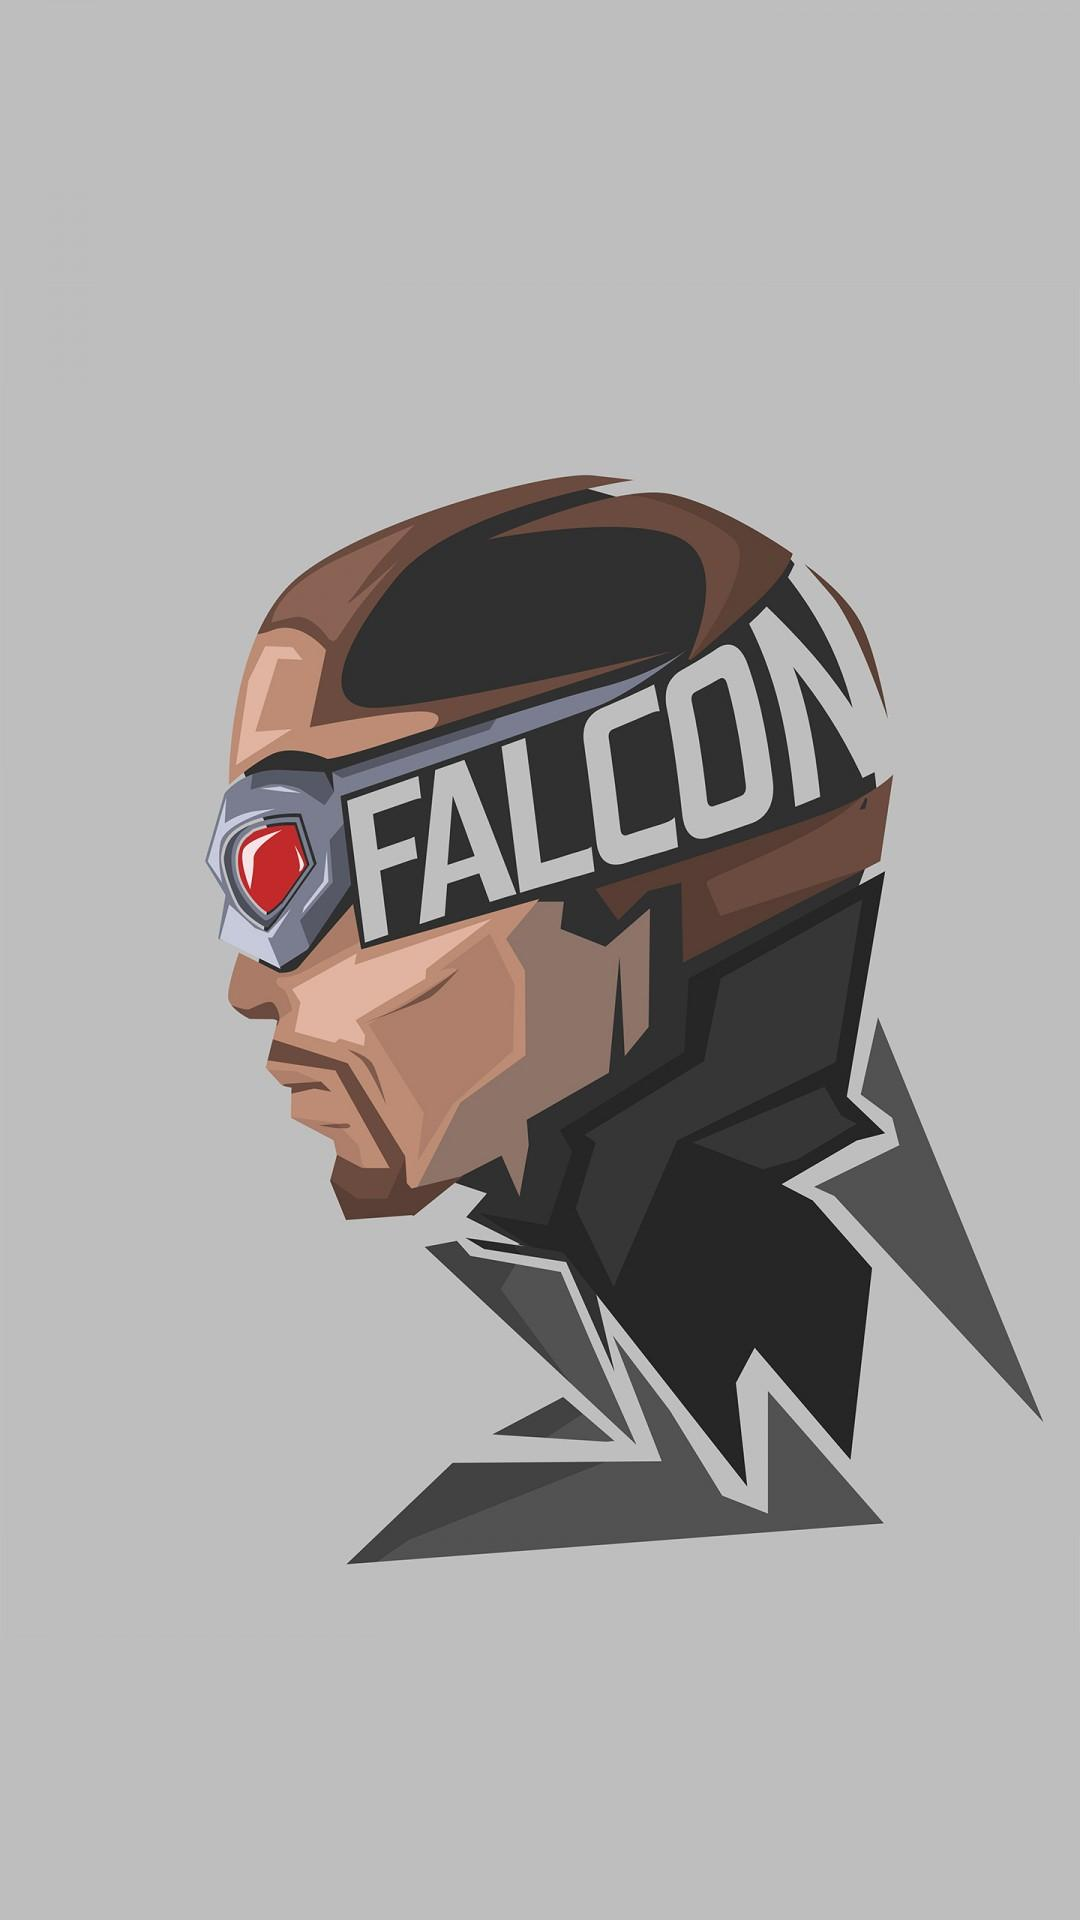 Falcon Marvel Superhero Minimal 4K 8K Wallpapers